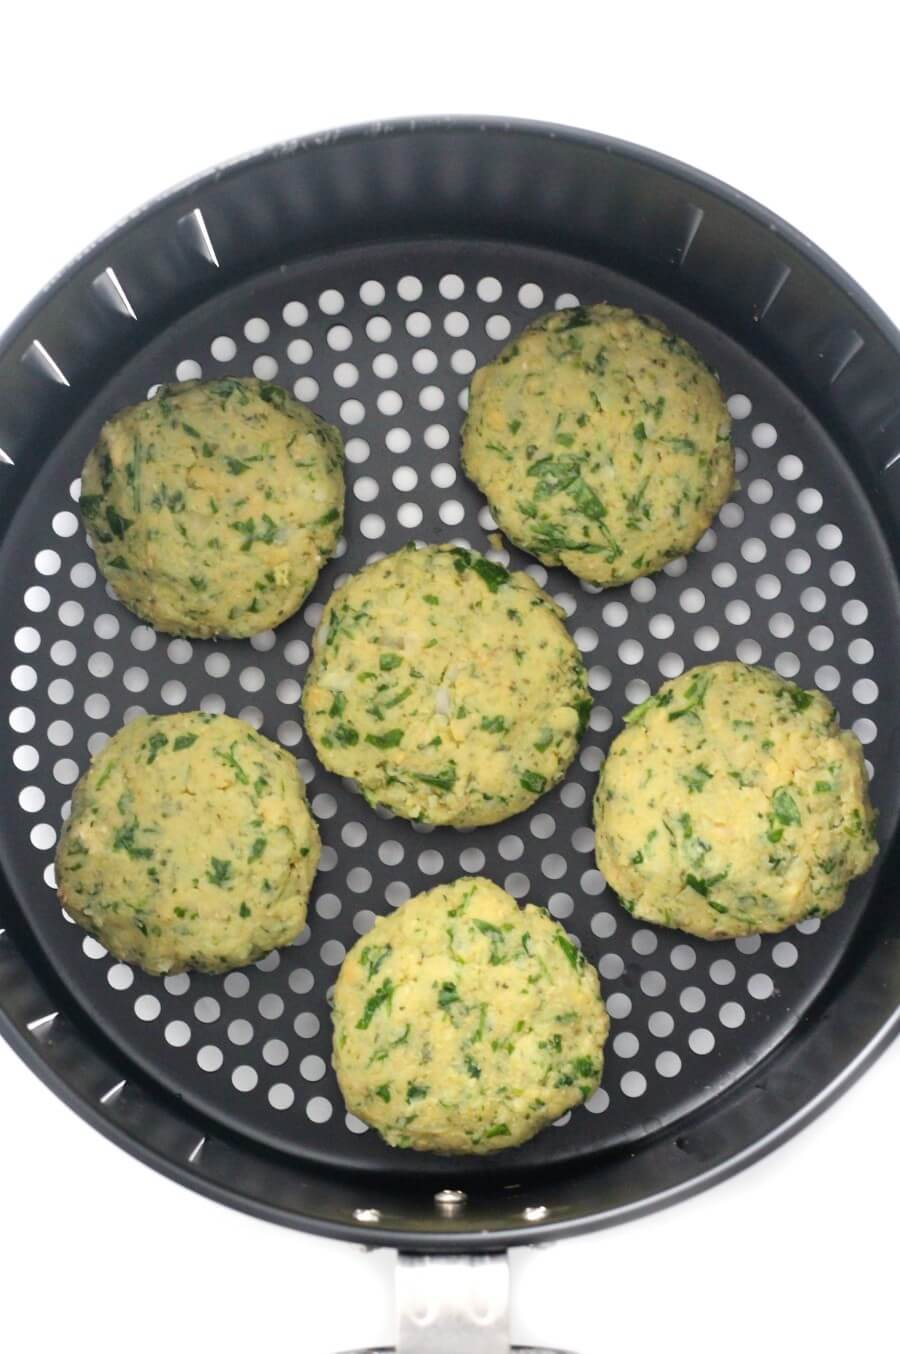 uncooked falafel patties in air fryer basket